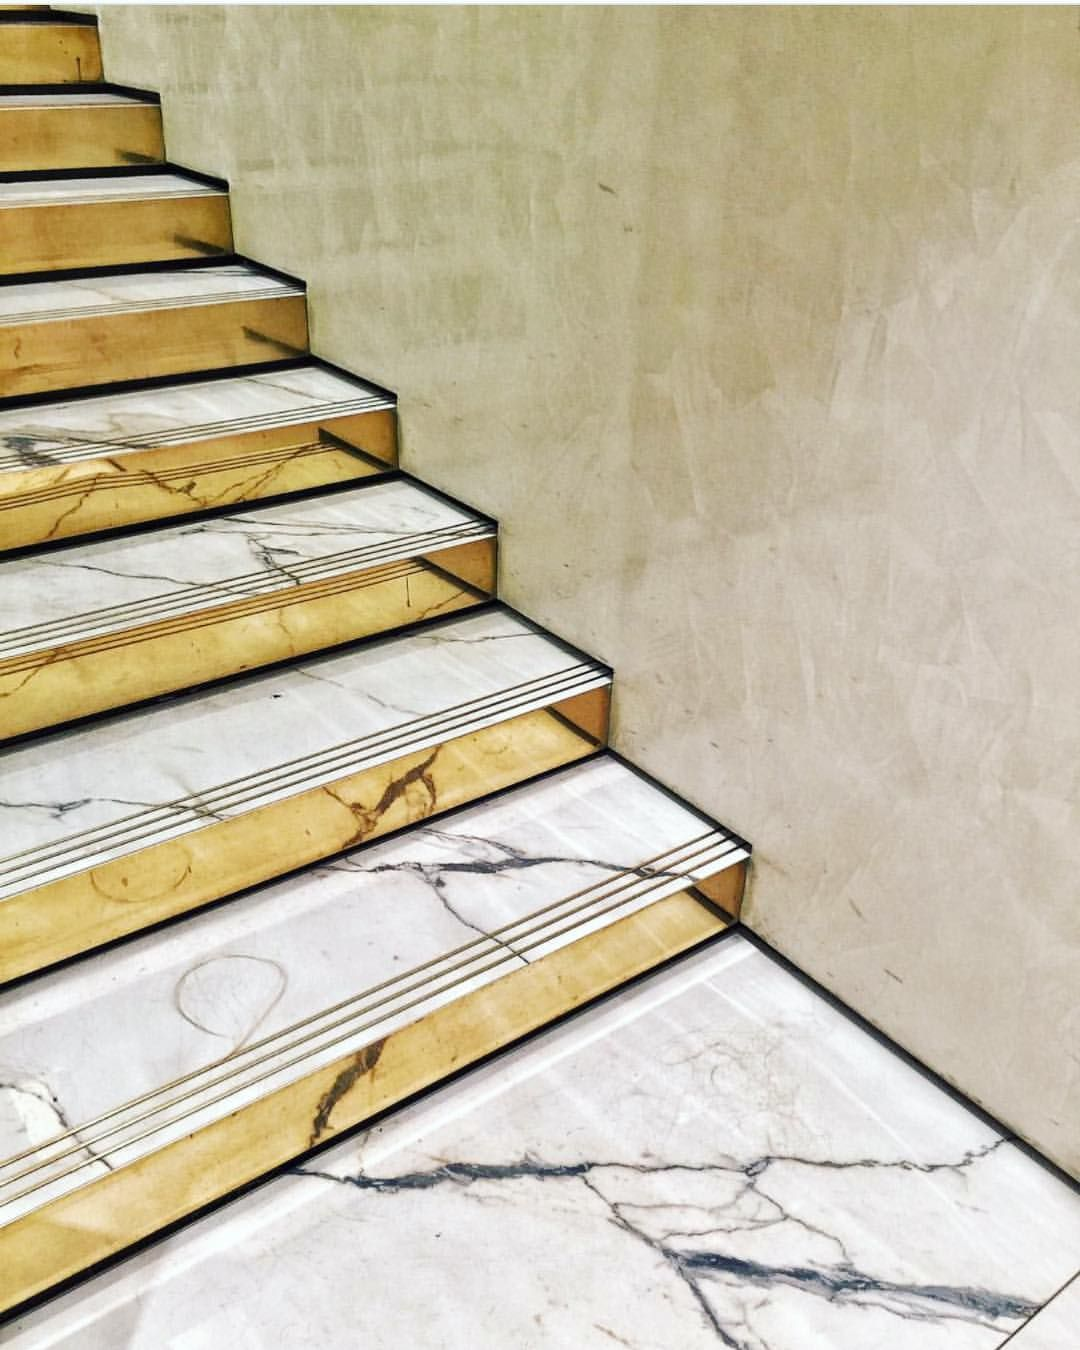 Pin by Jack (Thailand) on Stair | Pinterest | Stairs ...